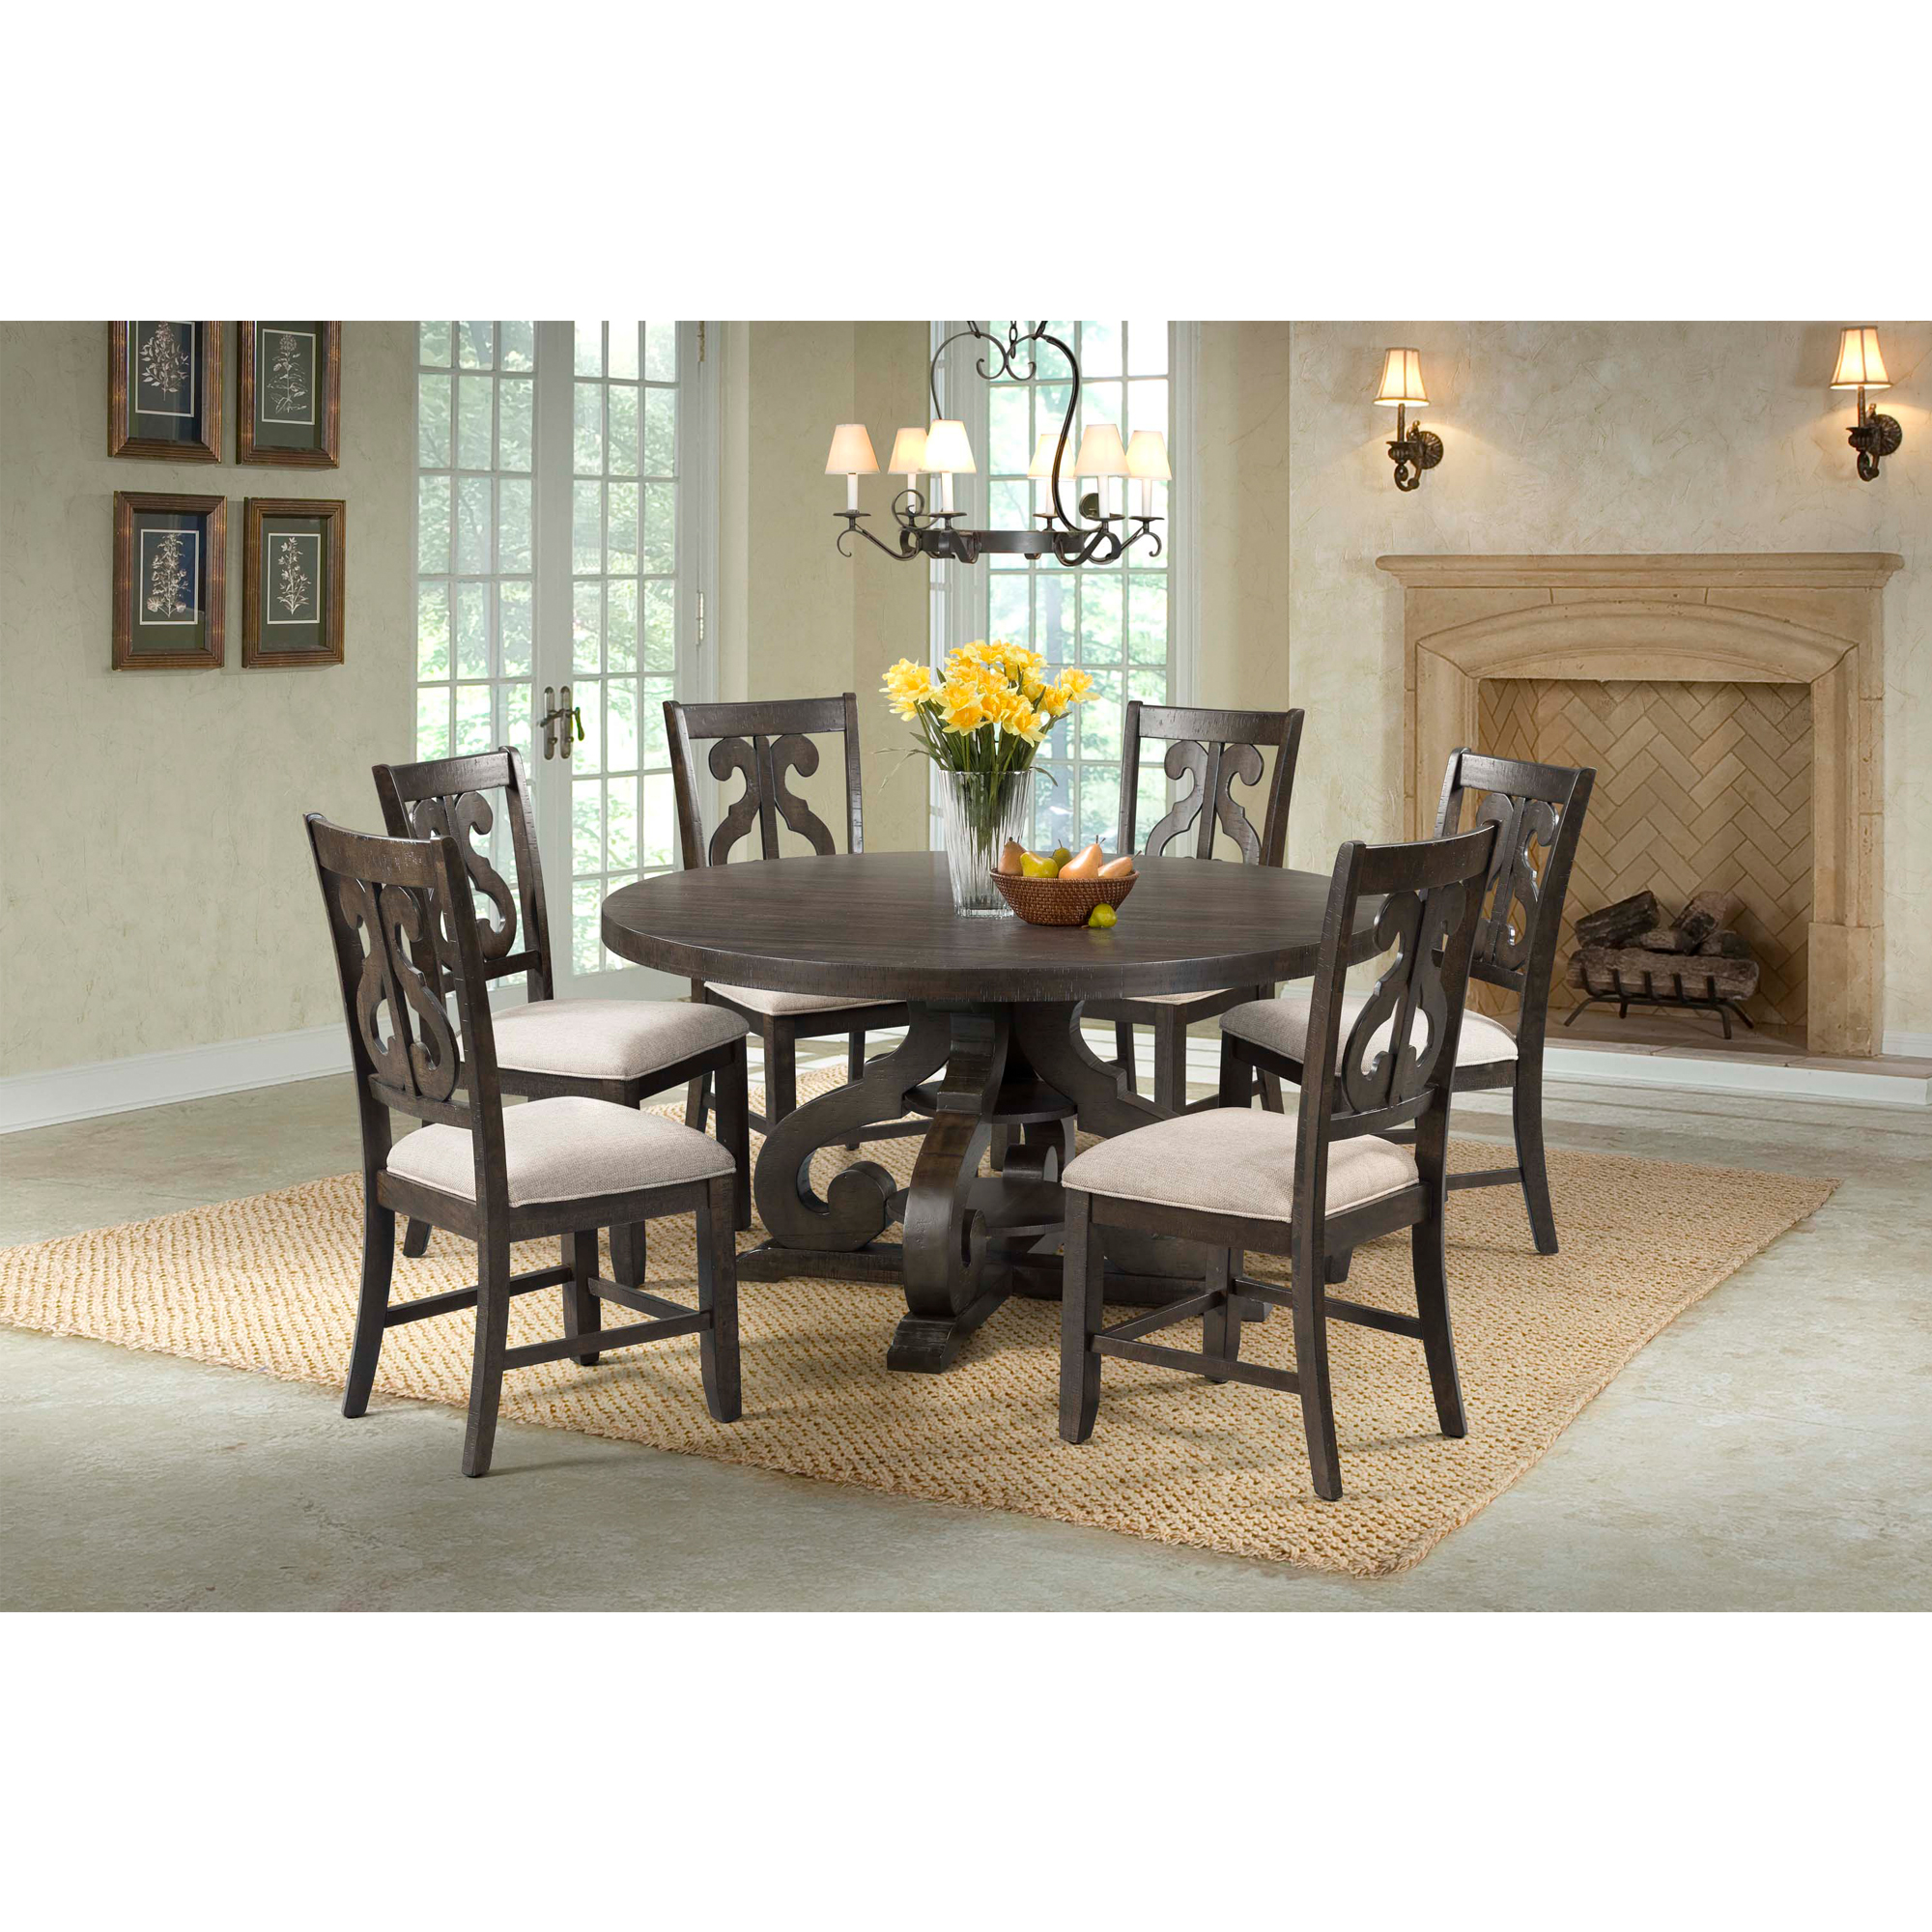 six chair round dining table